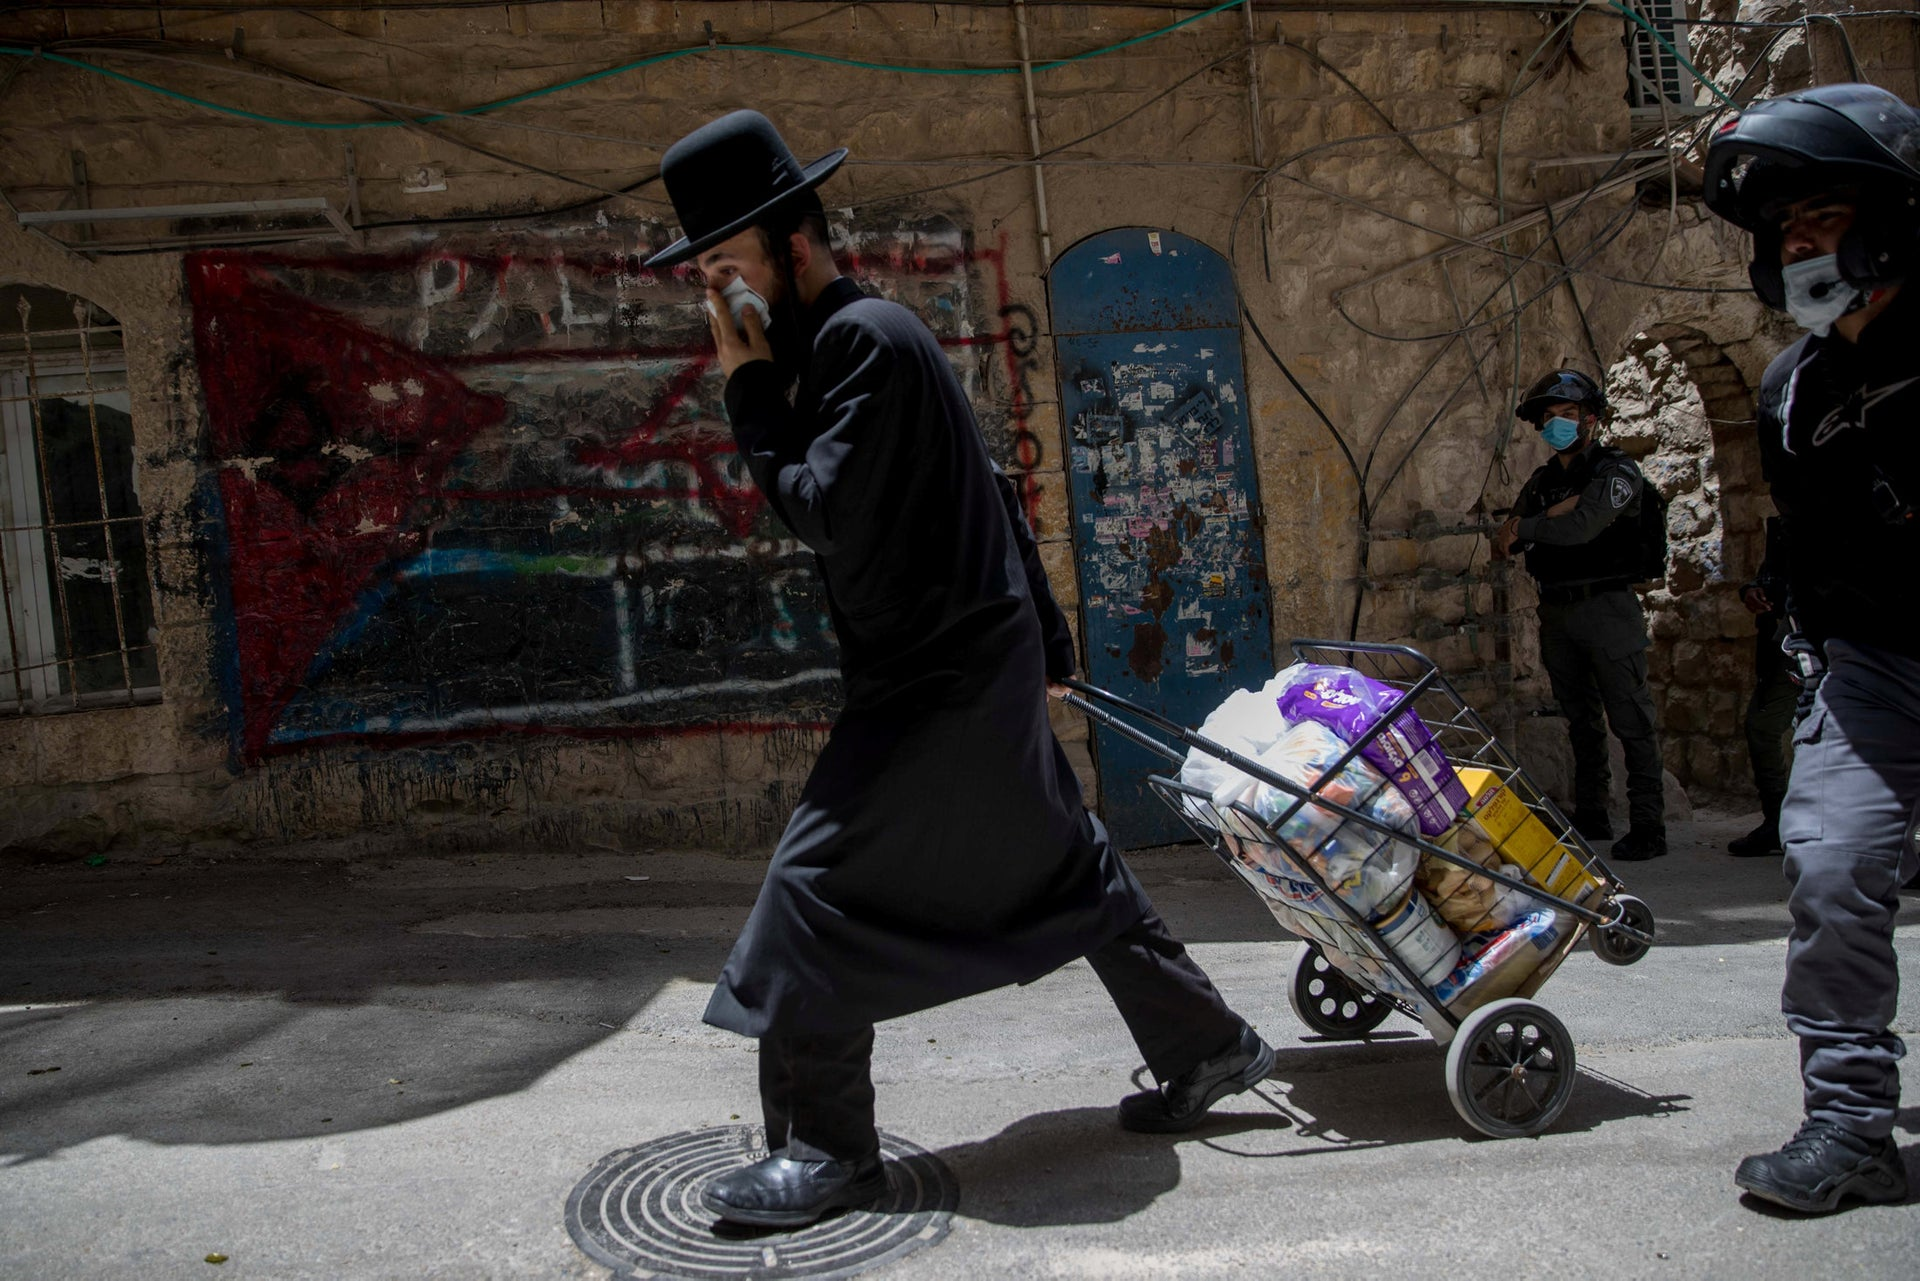 A man walks past the graffiti of a Palestinian flag in the ultra-Orthodox neighborhood of Mea Shearim, Jerusalem, June 11, 2020.